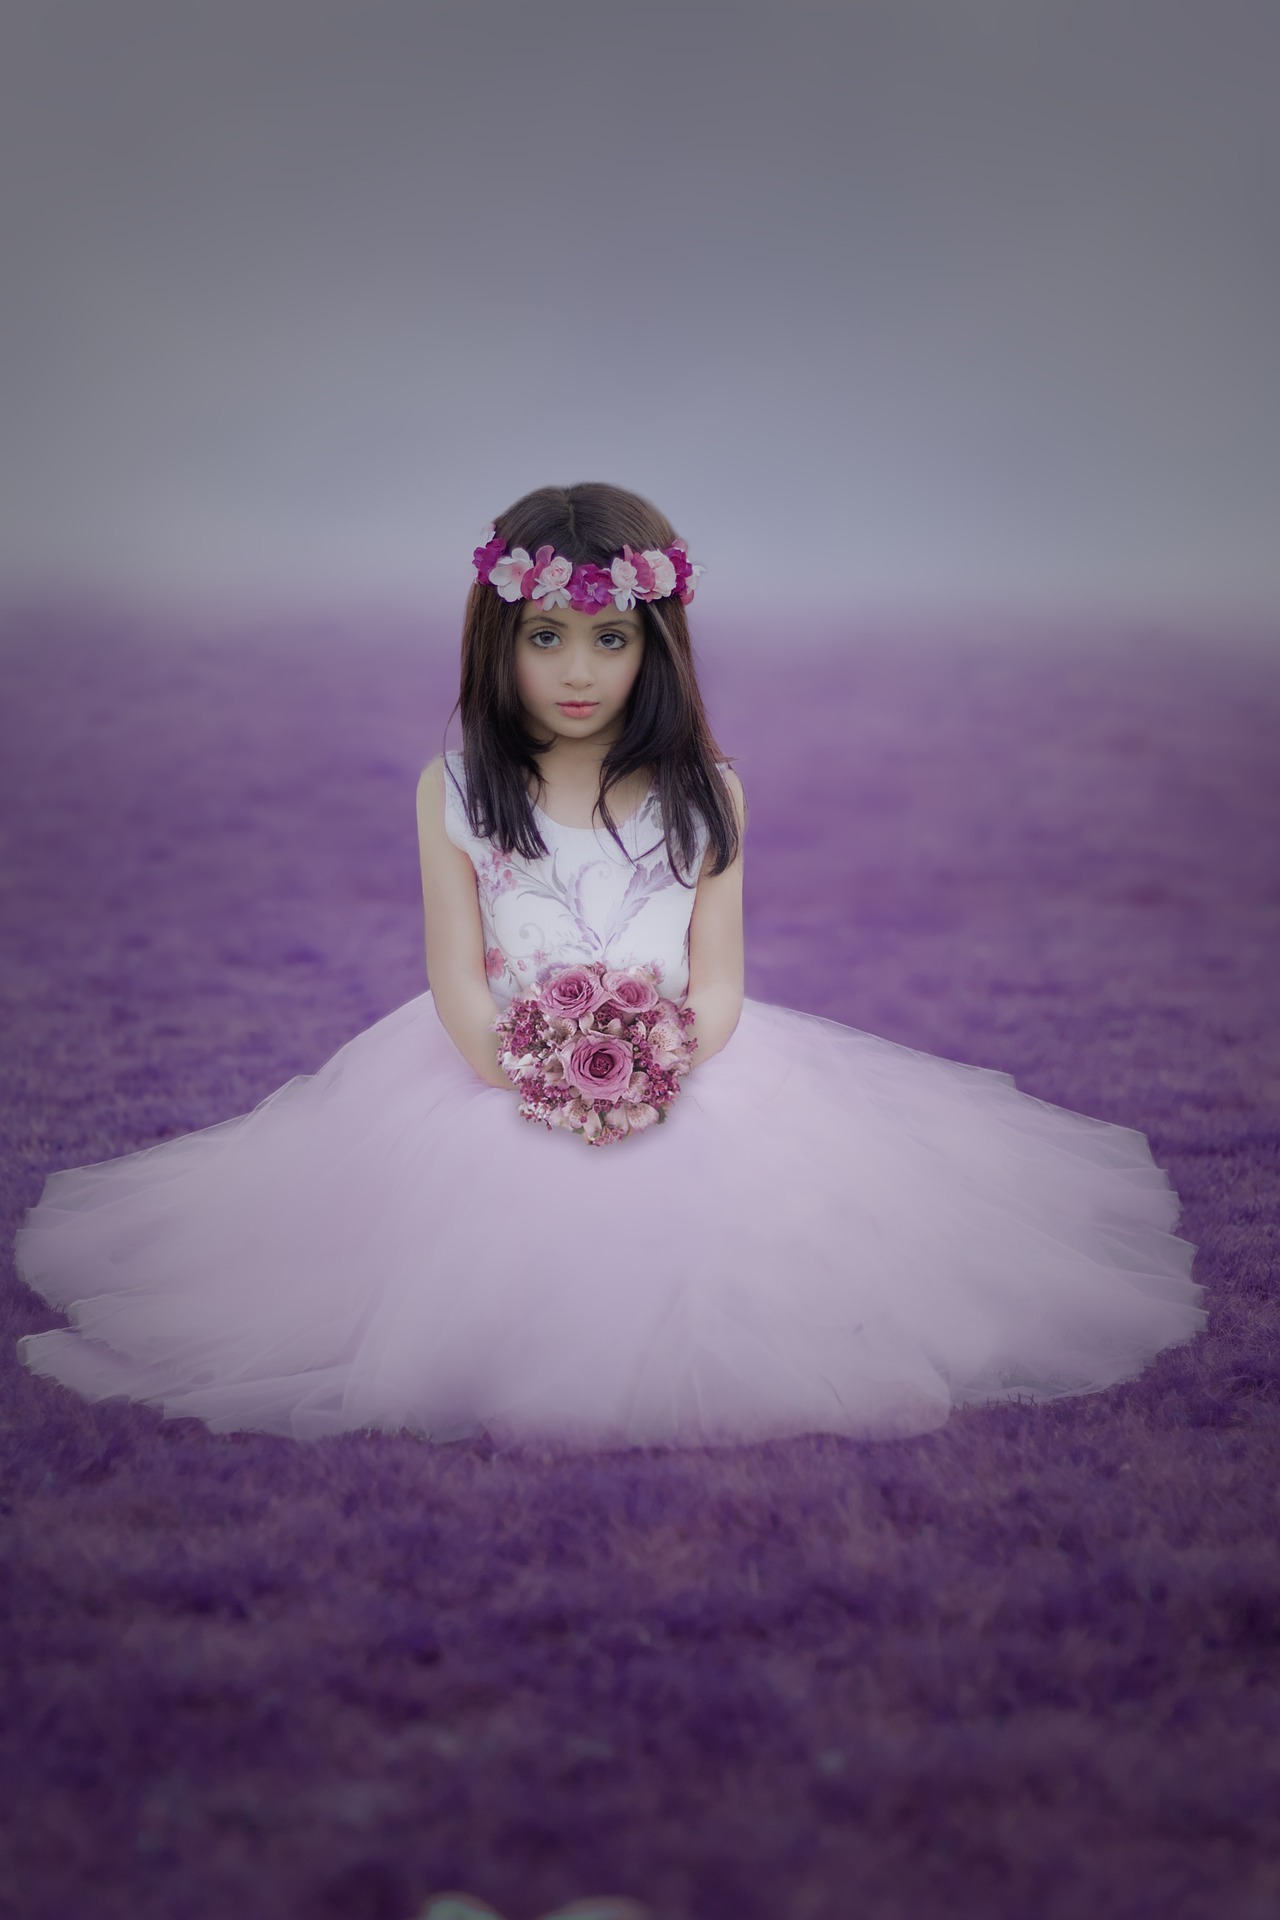 La drammatica usanza del child-marriage in Asia